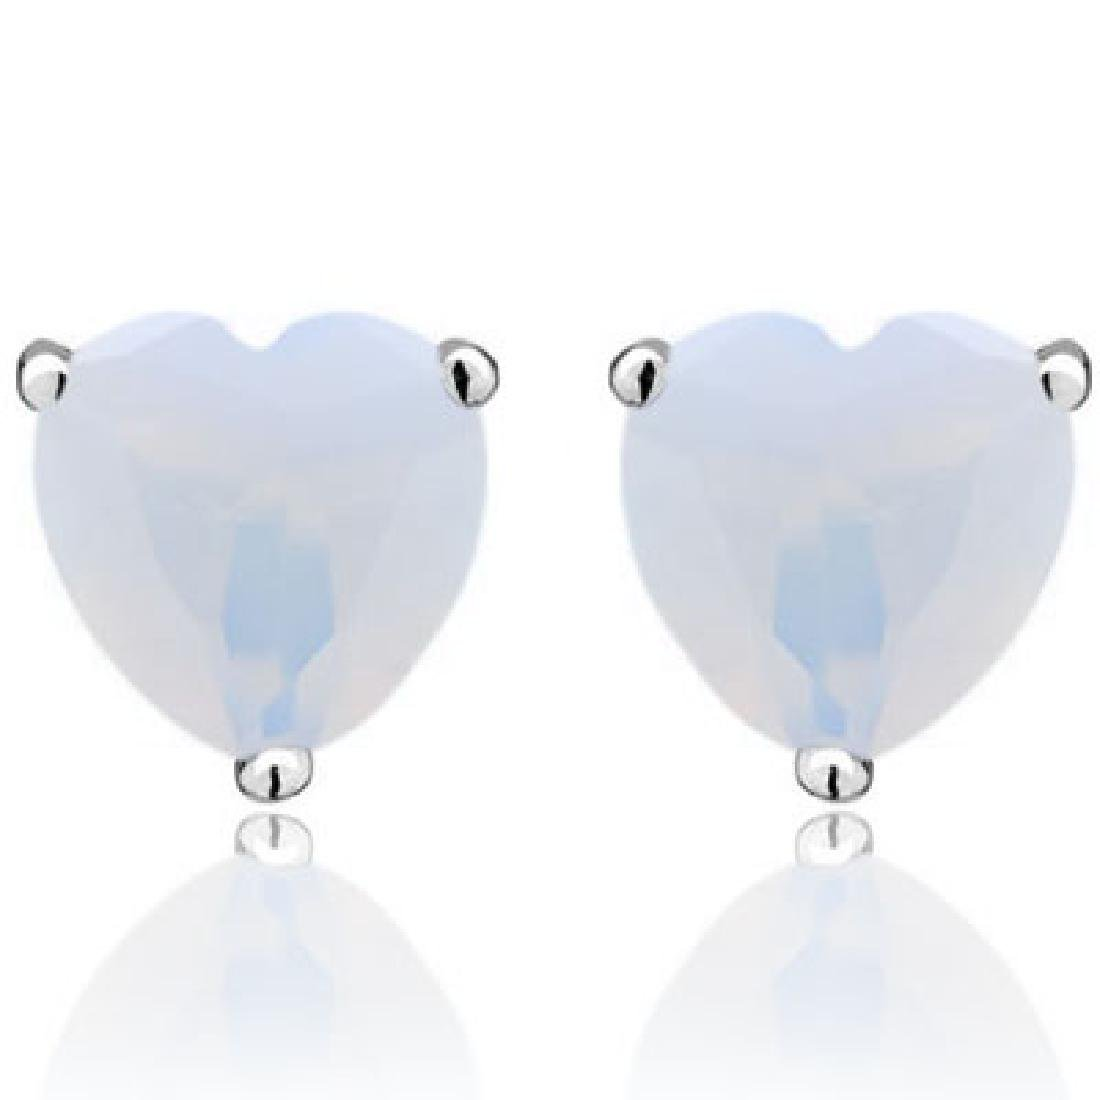 ADORABLE 1CT FIRE OPAL SOLITAIRE EARRINGS